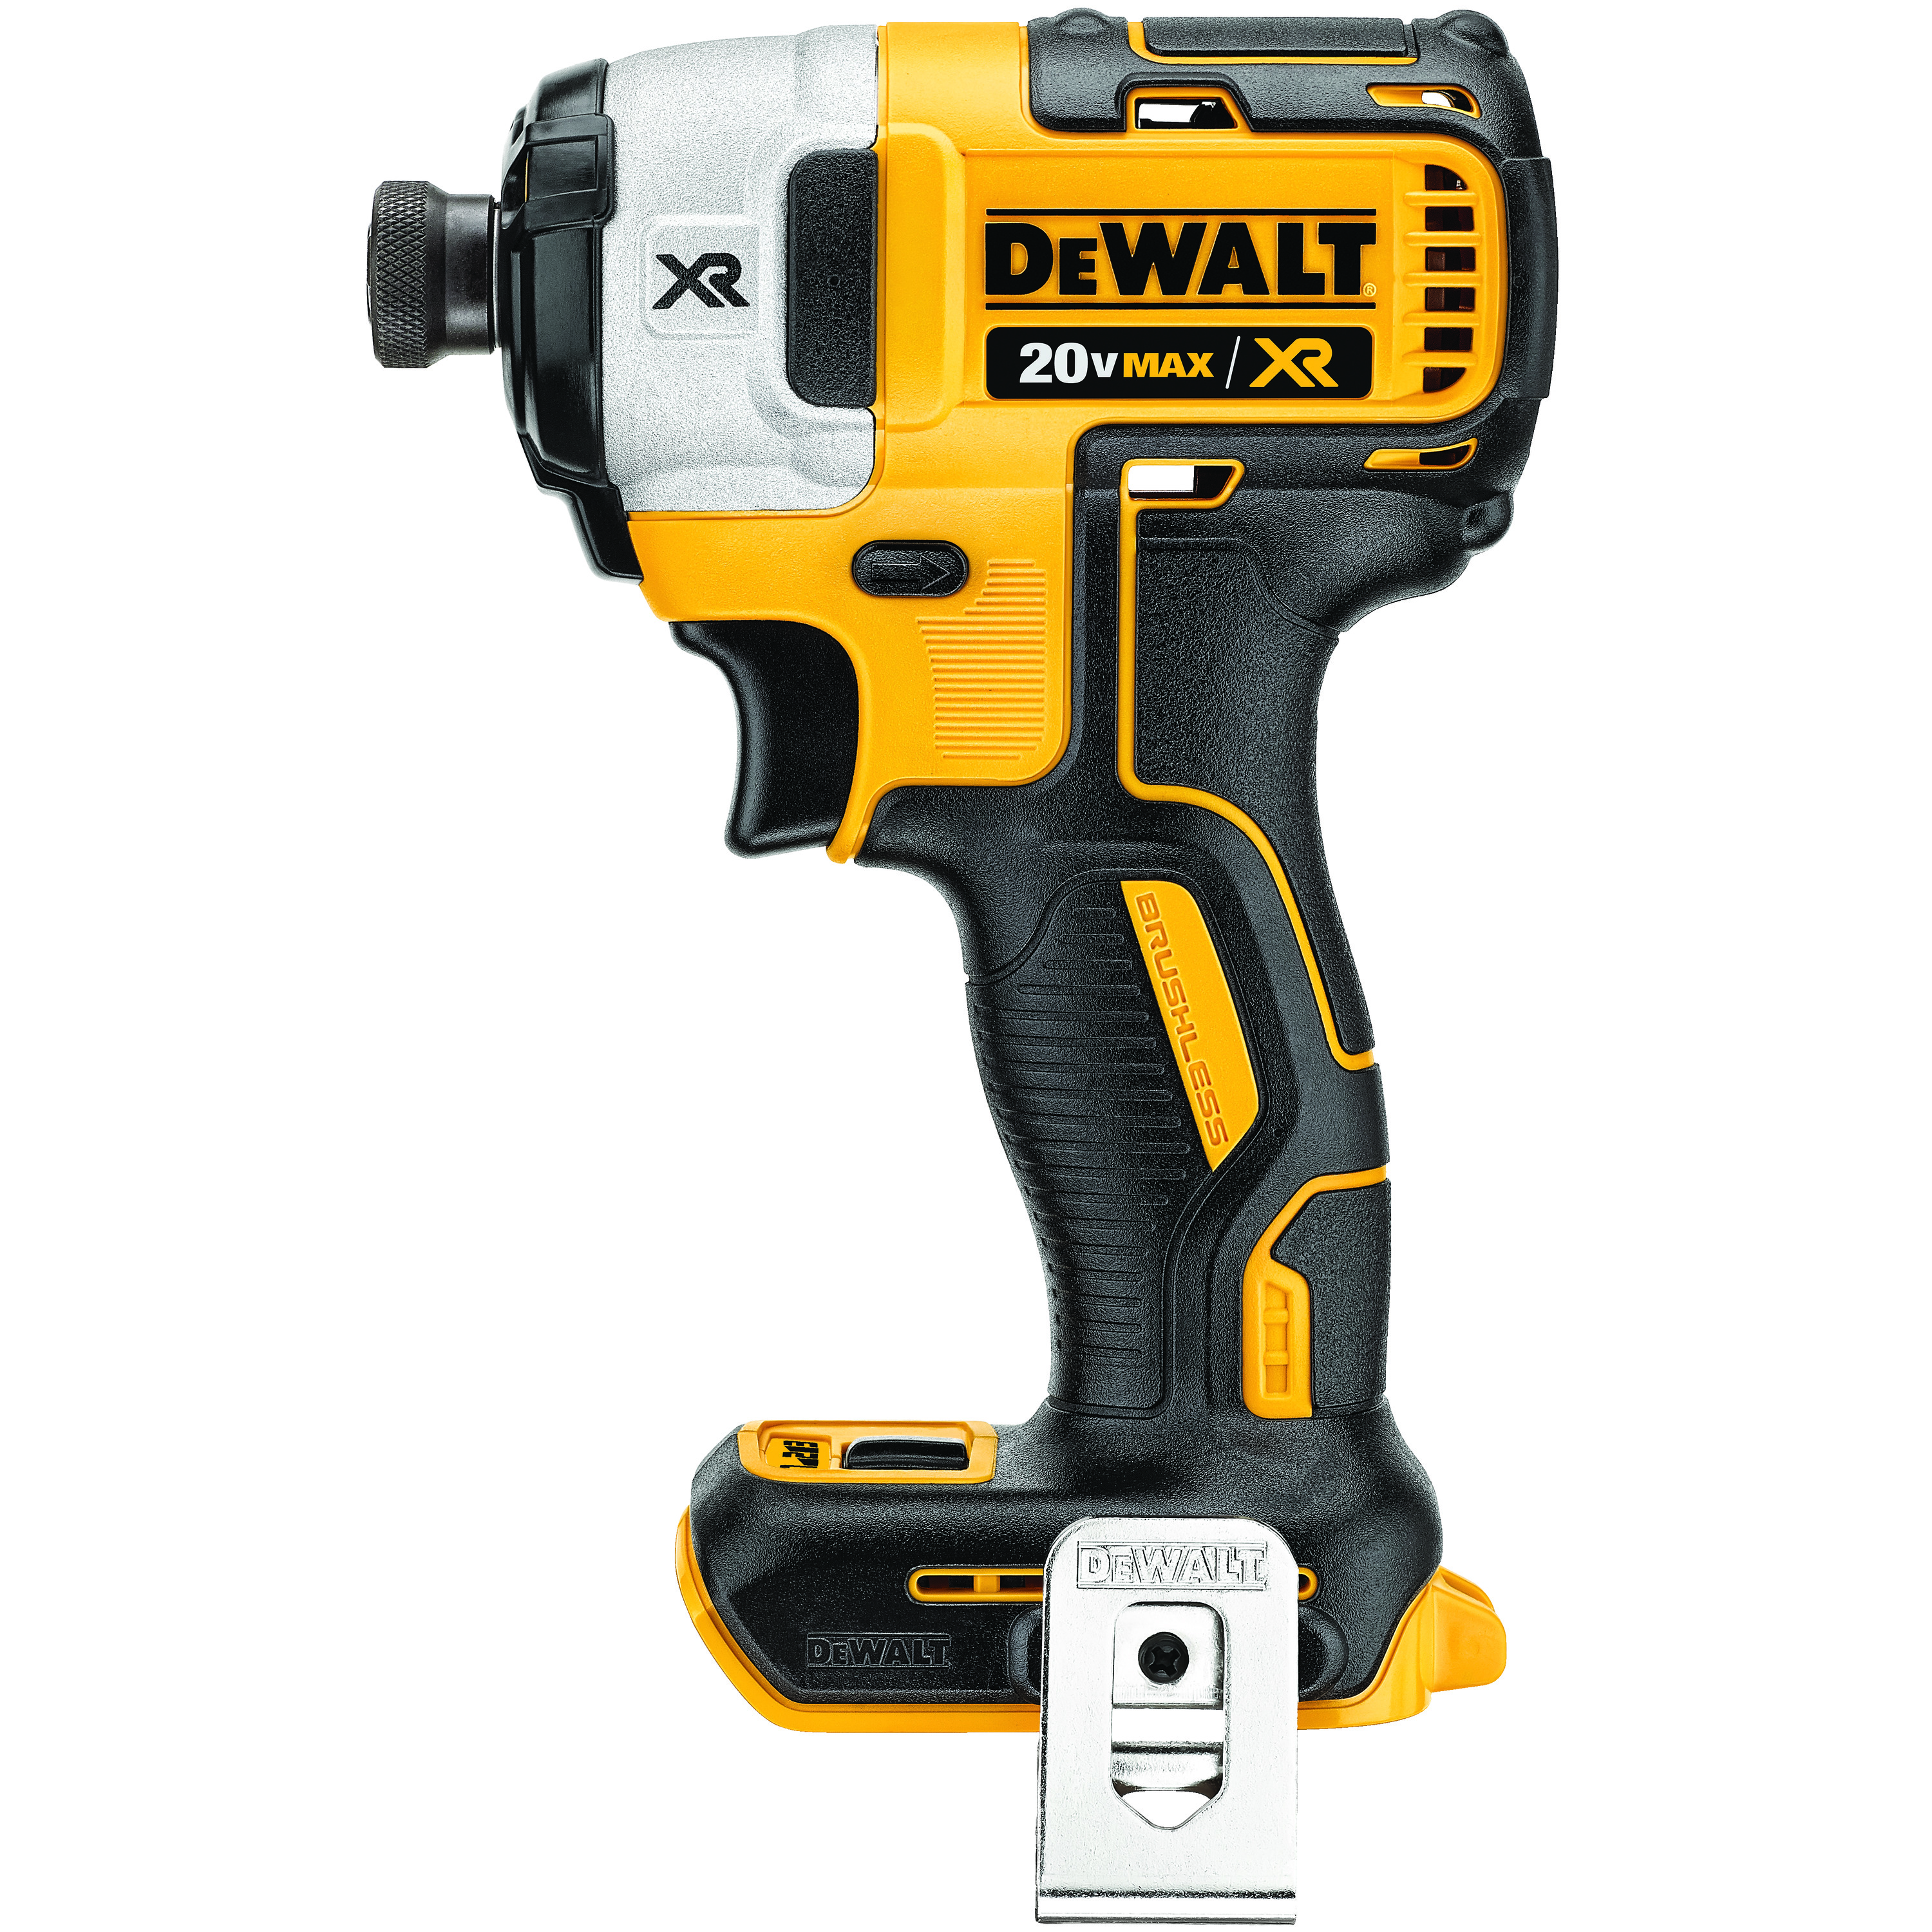 DeWALT® 20V MAX* MATRIX™ XR™ DCF887B Compact Lightweight Cordless Impact Driver, 1/4 in Quick-Release Drive, 0 to 3800 ipm, 1825 in-lb Torque, 20 V, 5.3 in OAL, Tool Only